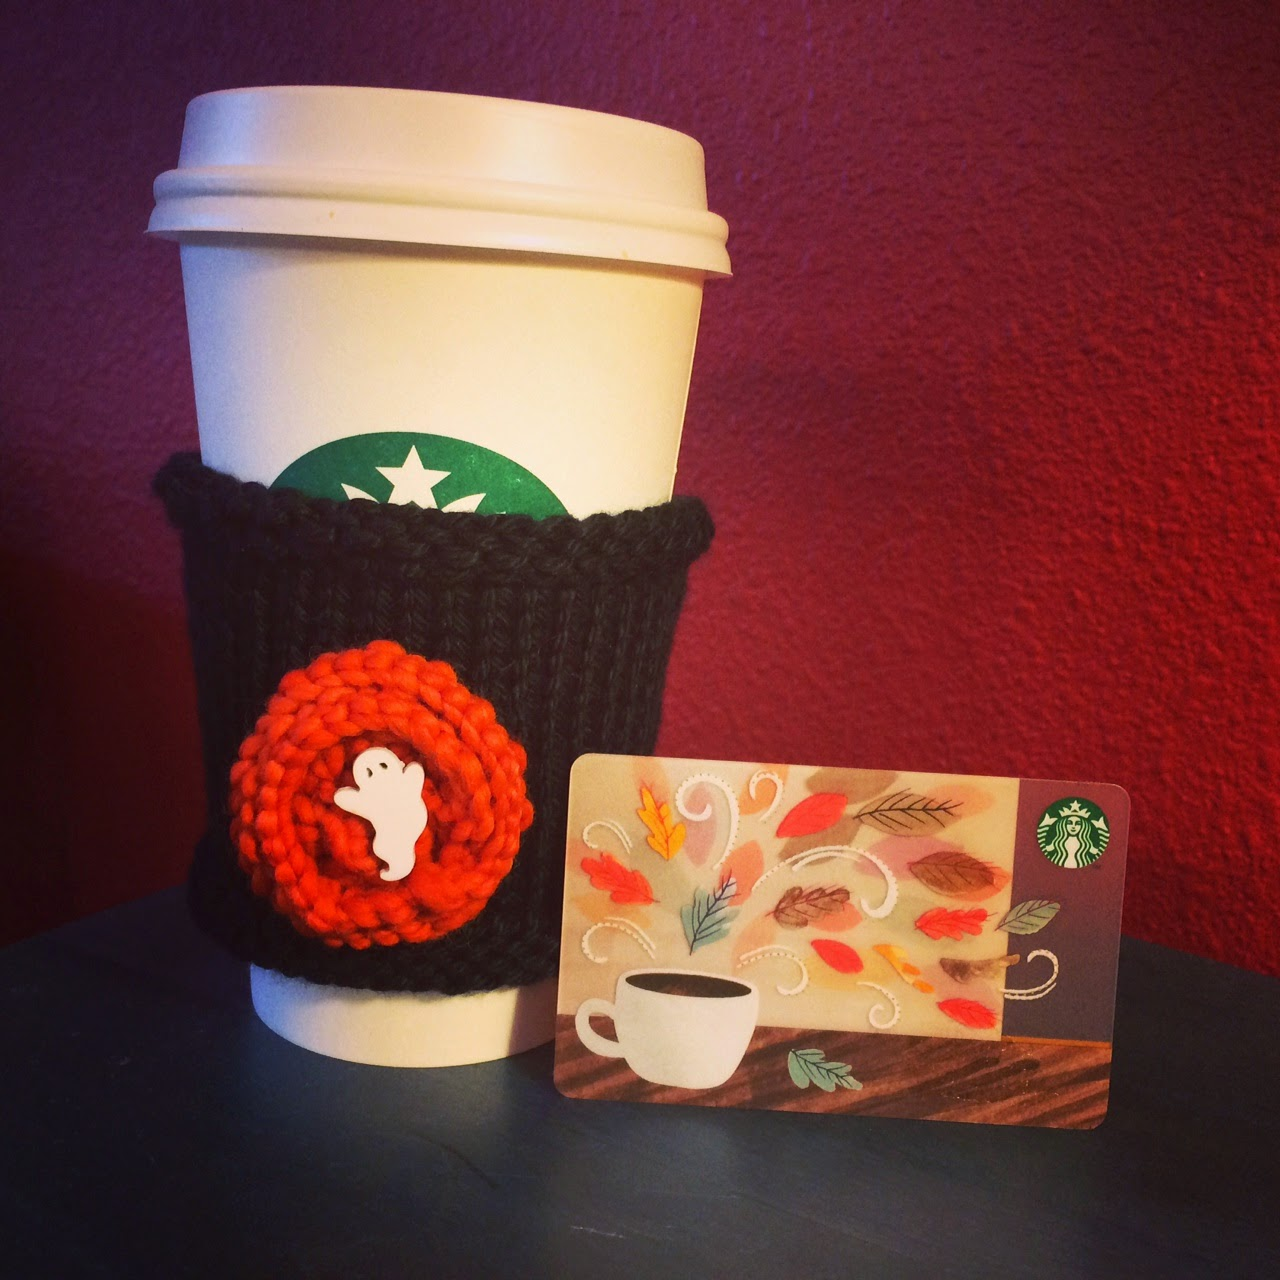 Starbucks Cup Card Starbucks Gift Card And Hand